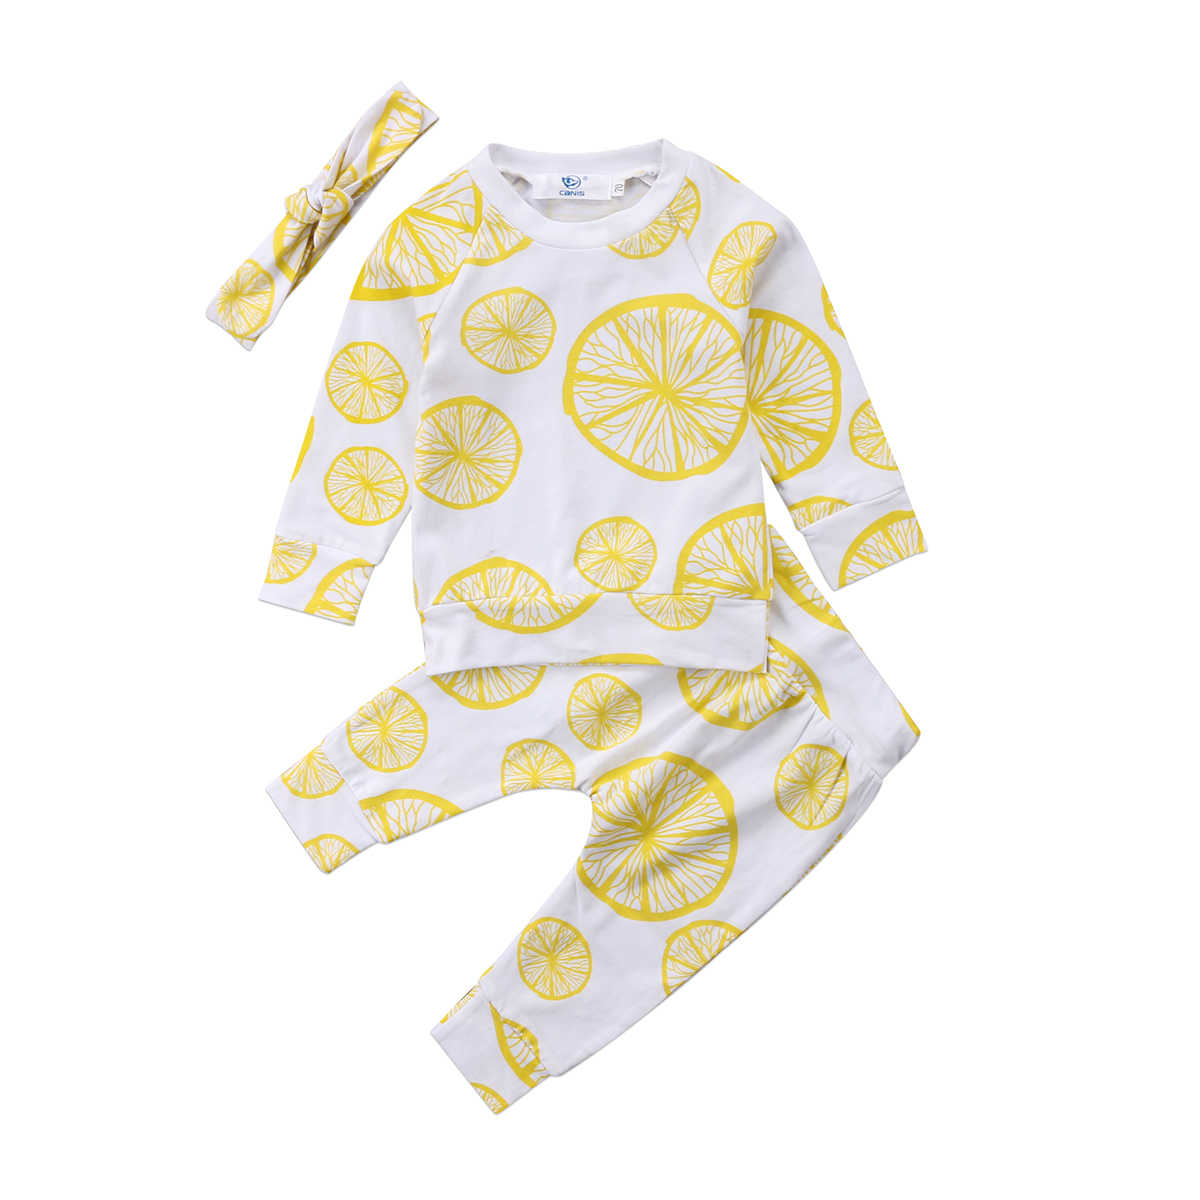 4c1aff3402280 3pcs Baby Clothing Sweet Newborn Baby Girl Outfit Clothes Pugs Donuts Lemon  Tops Leggings Pant Headband Set